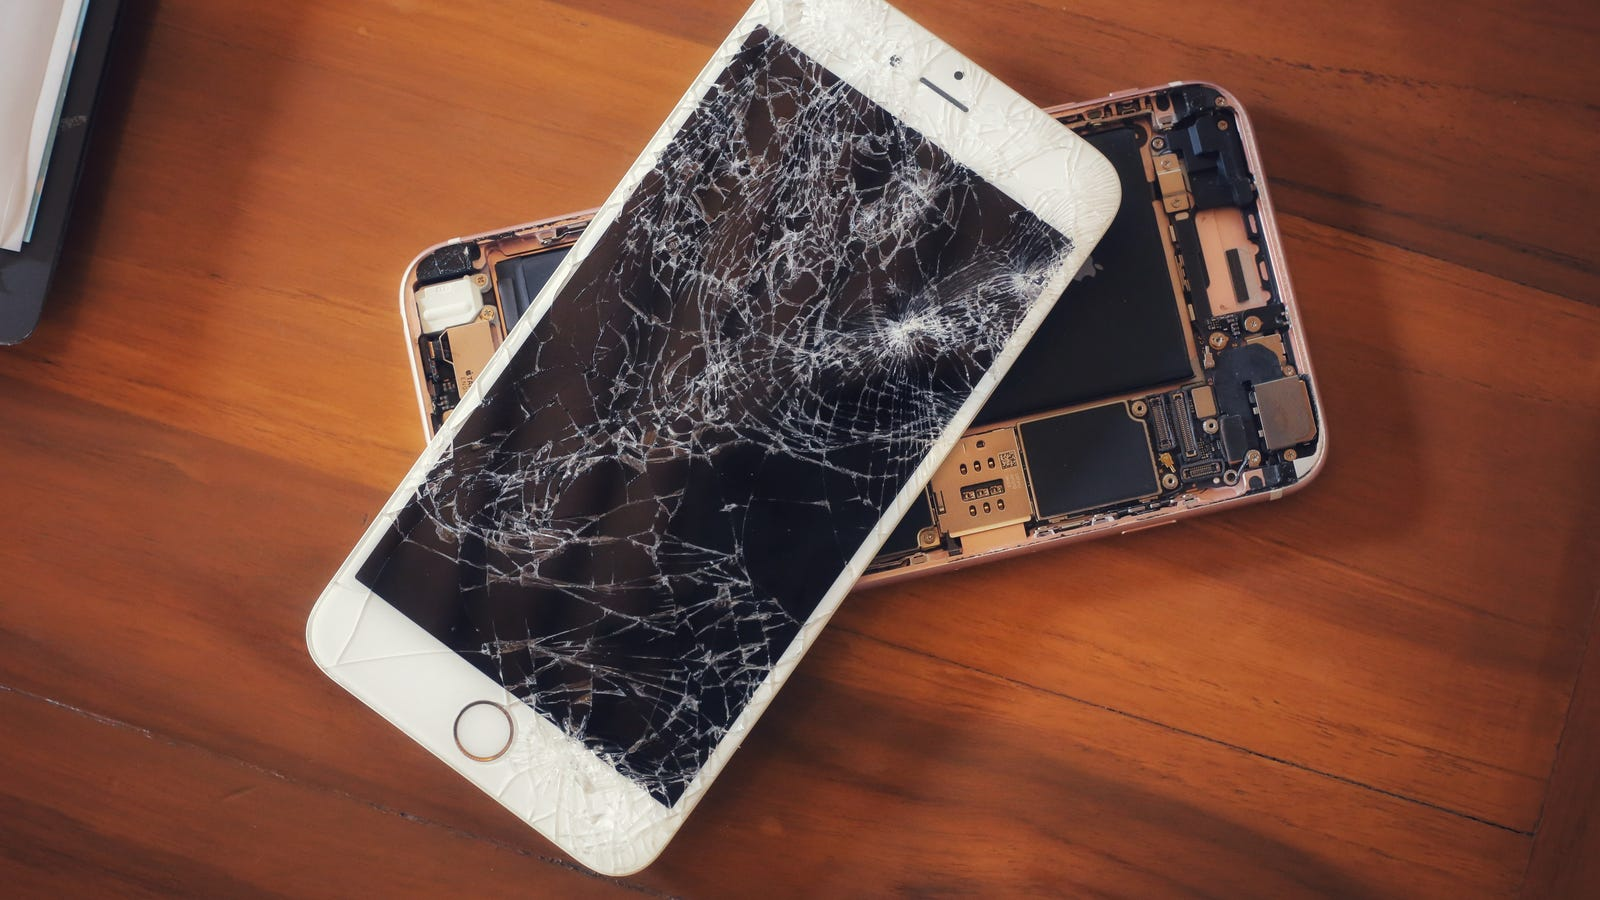 Where to Get Your Out-of-Warranty iOS Device Fixed